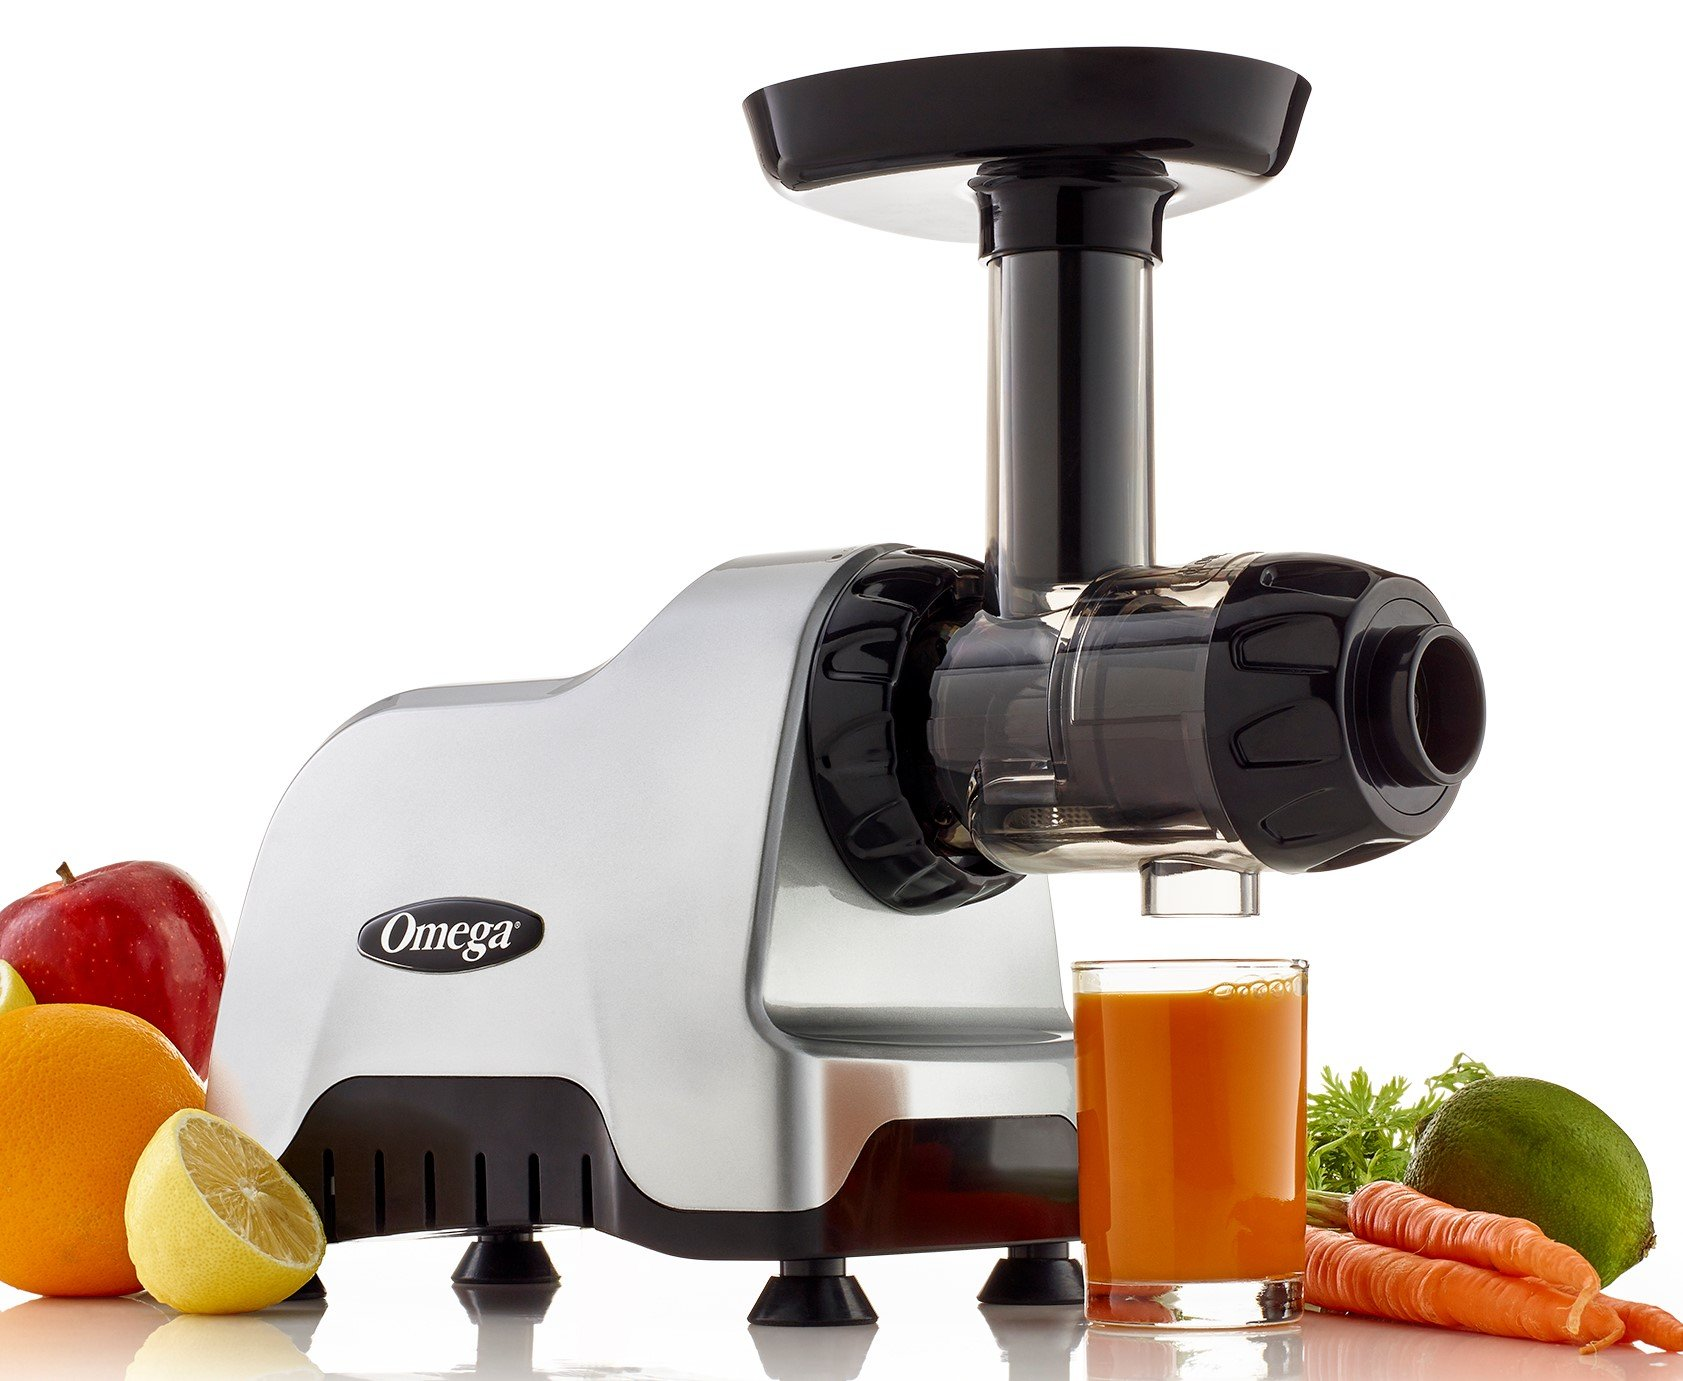 Omega CNC80S Compact Slow Speed Multi-Purpose Nutrition Center Juicer with Quiet Motor Creates Continuous Fresh Healthy Fruit and Vegetable Juice at 80 RPM 200-Watts Silver by Omega